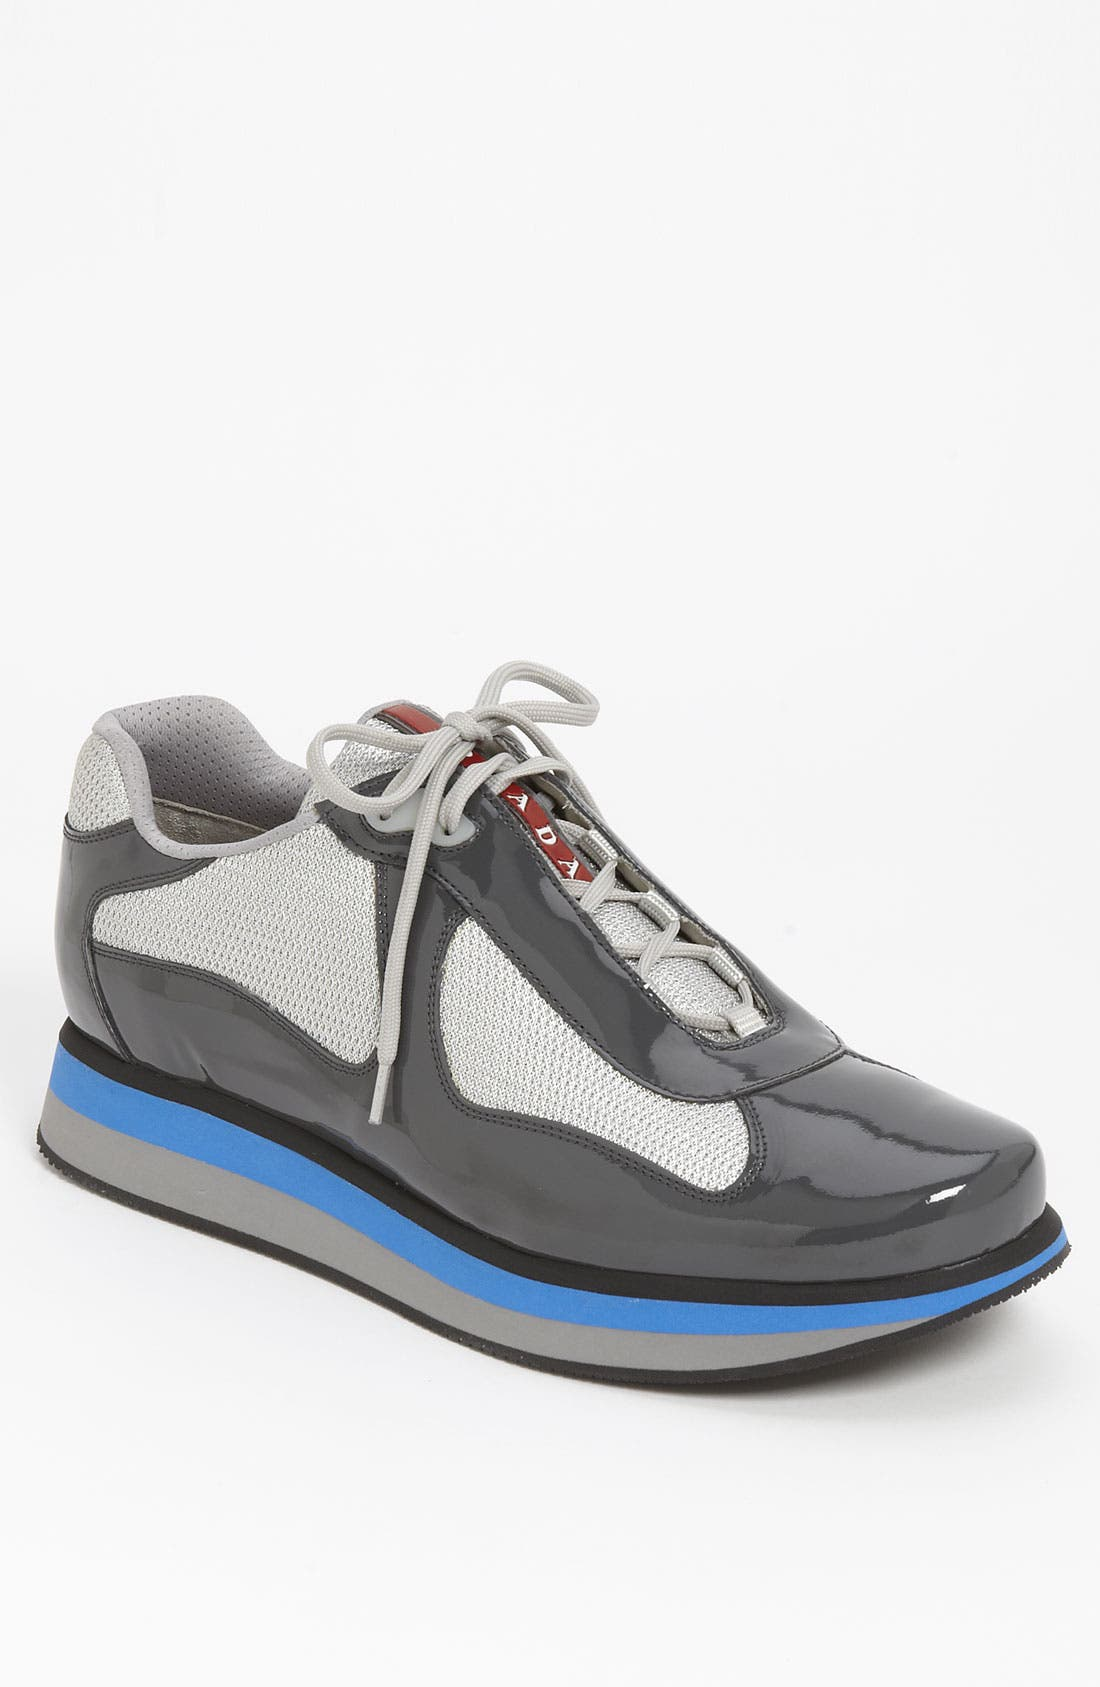 Alternate Image 1 Selected - Prada 'Americas Cup' Double Sole Sneaker